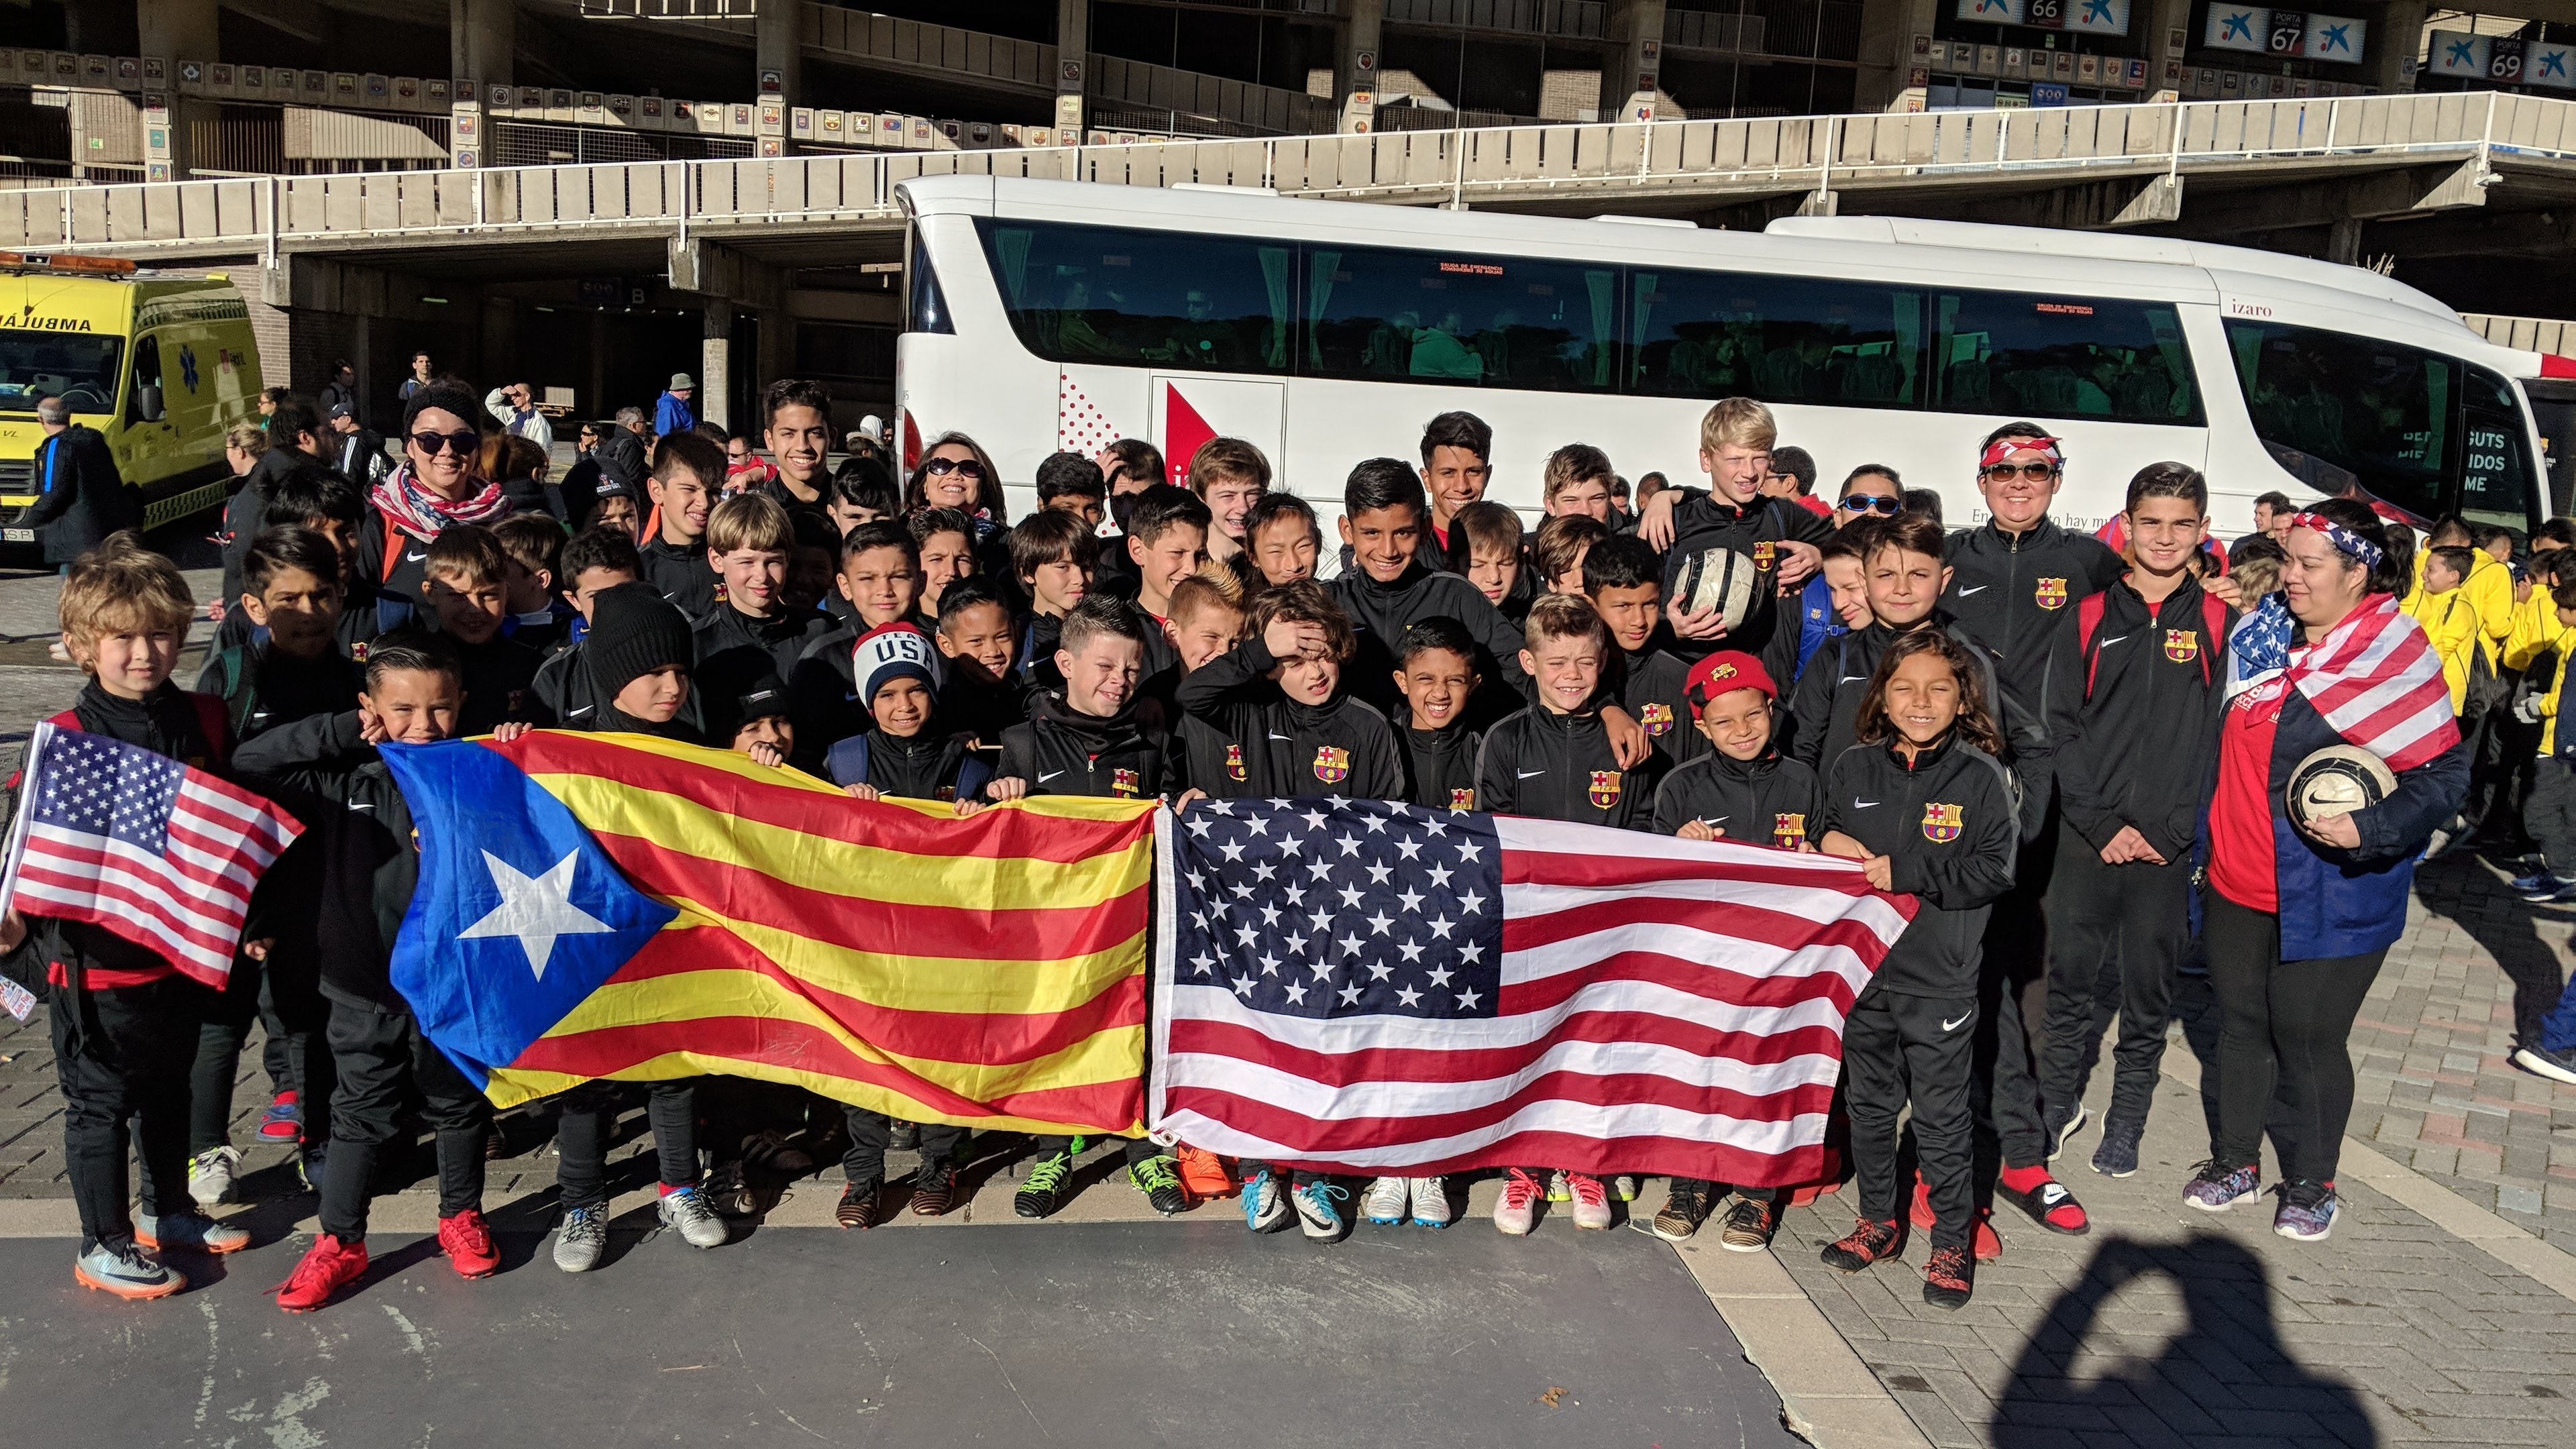 Group Photo with the Barca Flag and our USA Flag